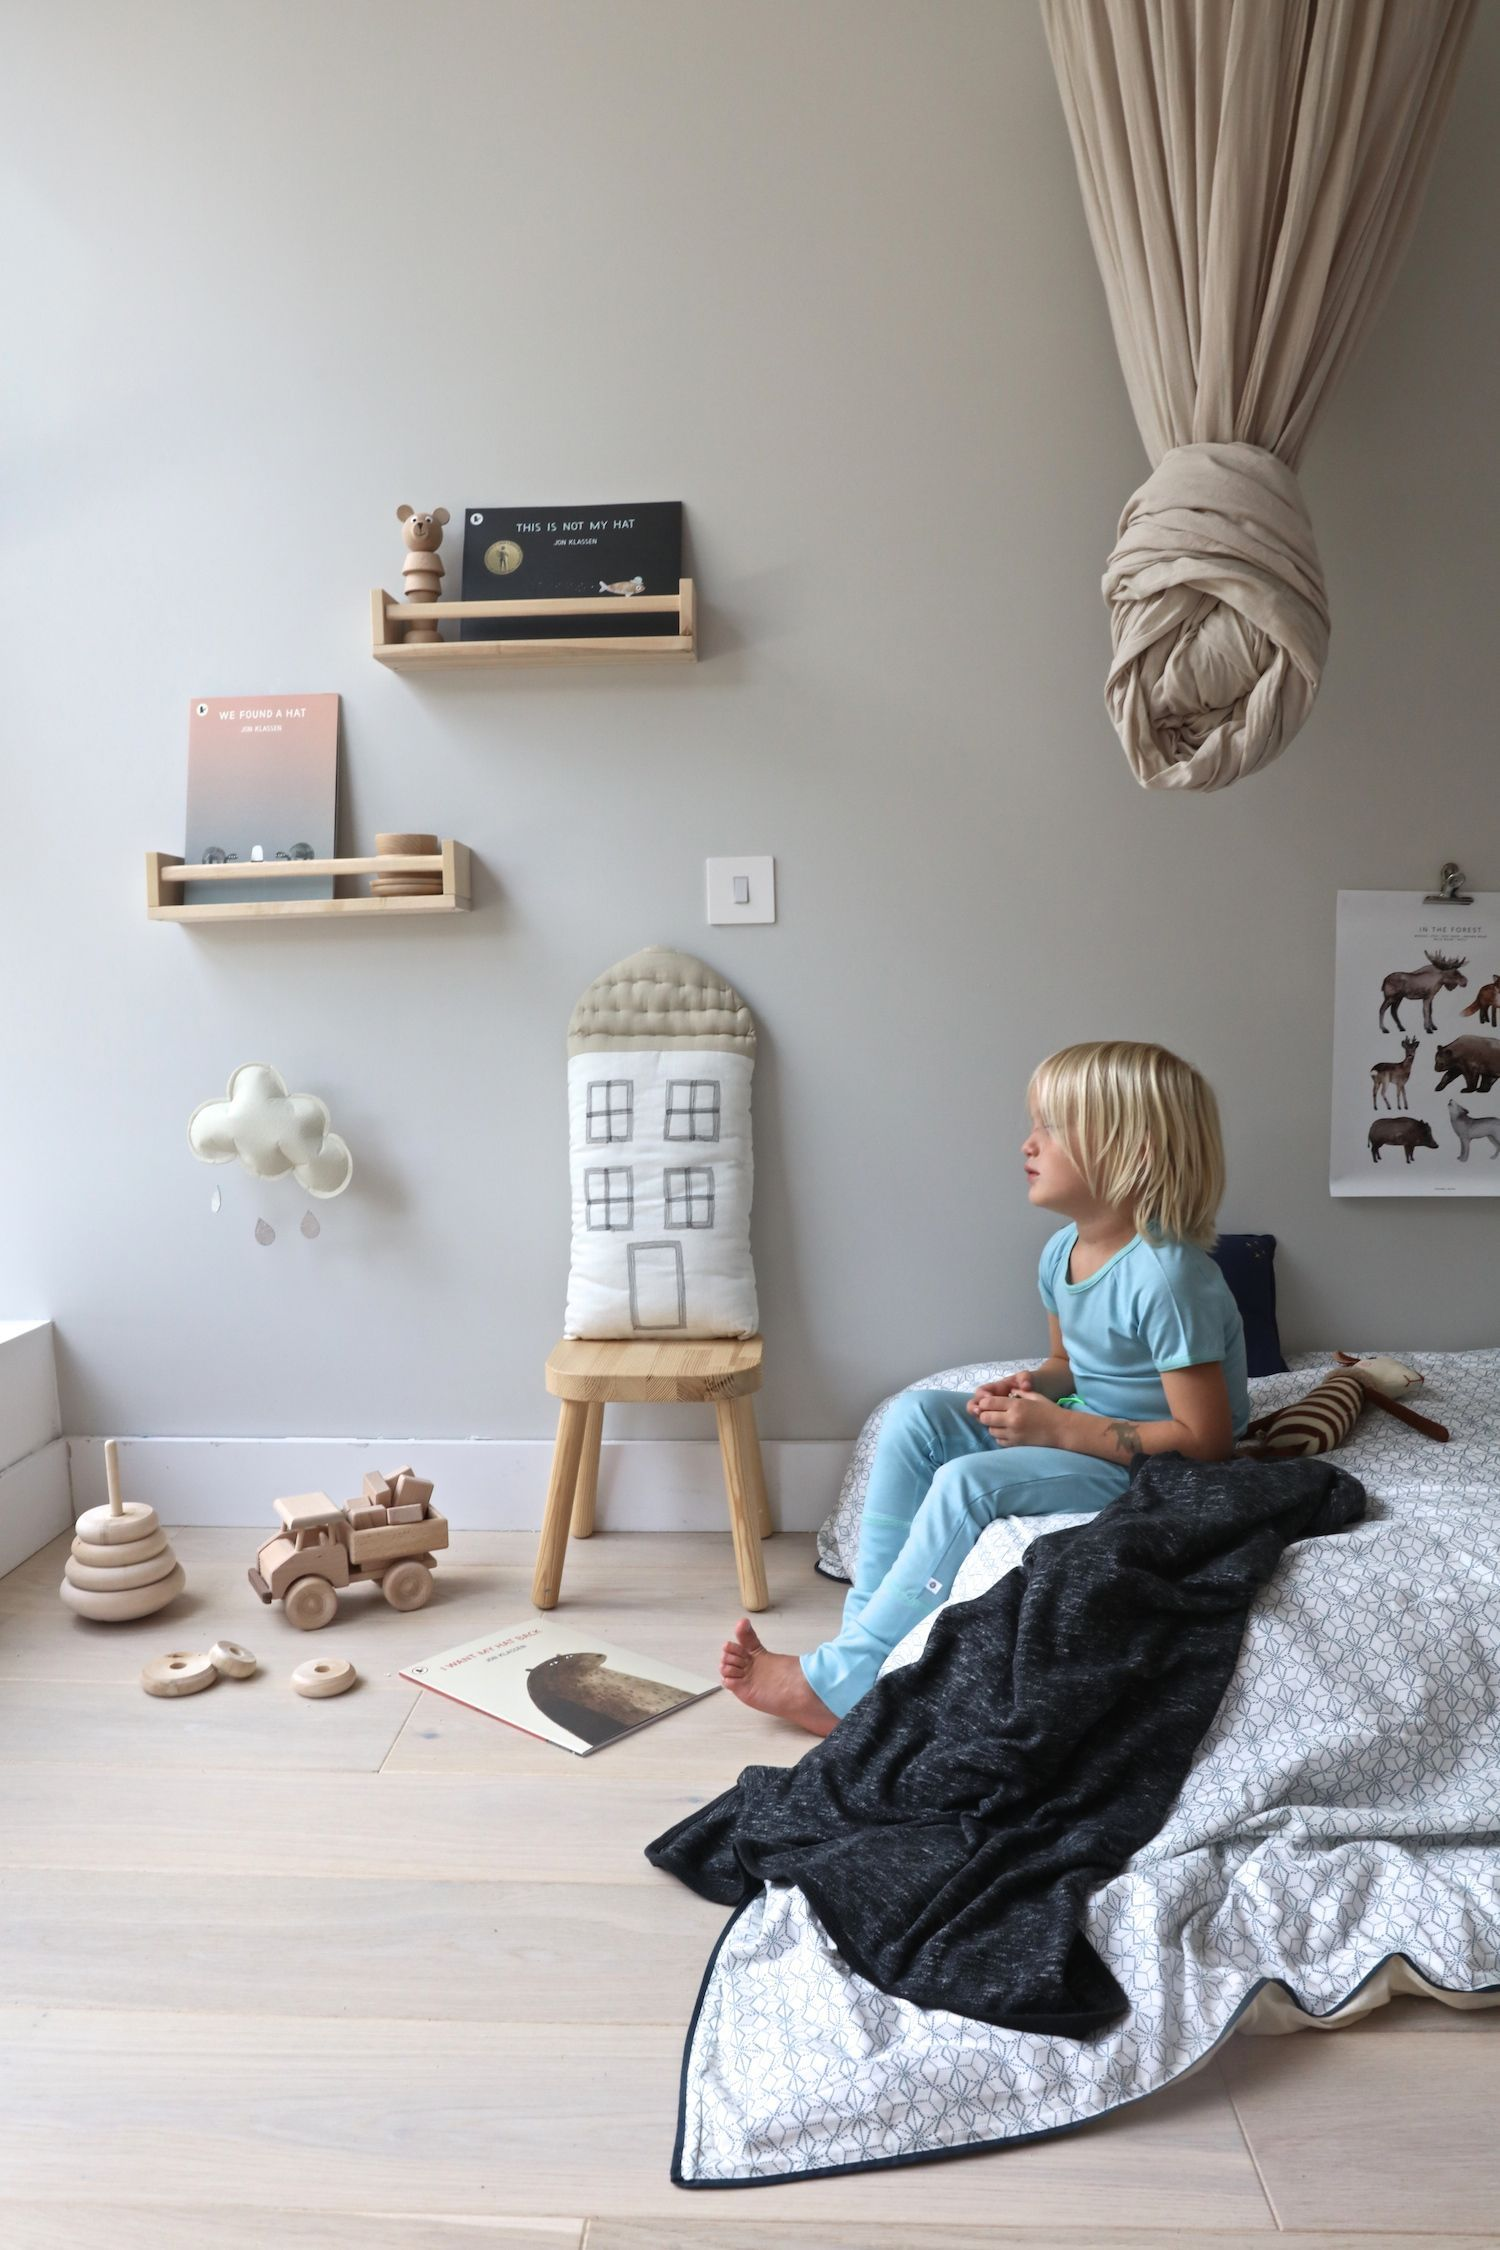 Bedroom Ideas By Lasifar0Sathi Camomile London Piupia Smalls Oskoe Jon Klassen Giveaway